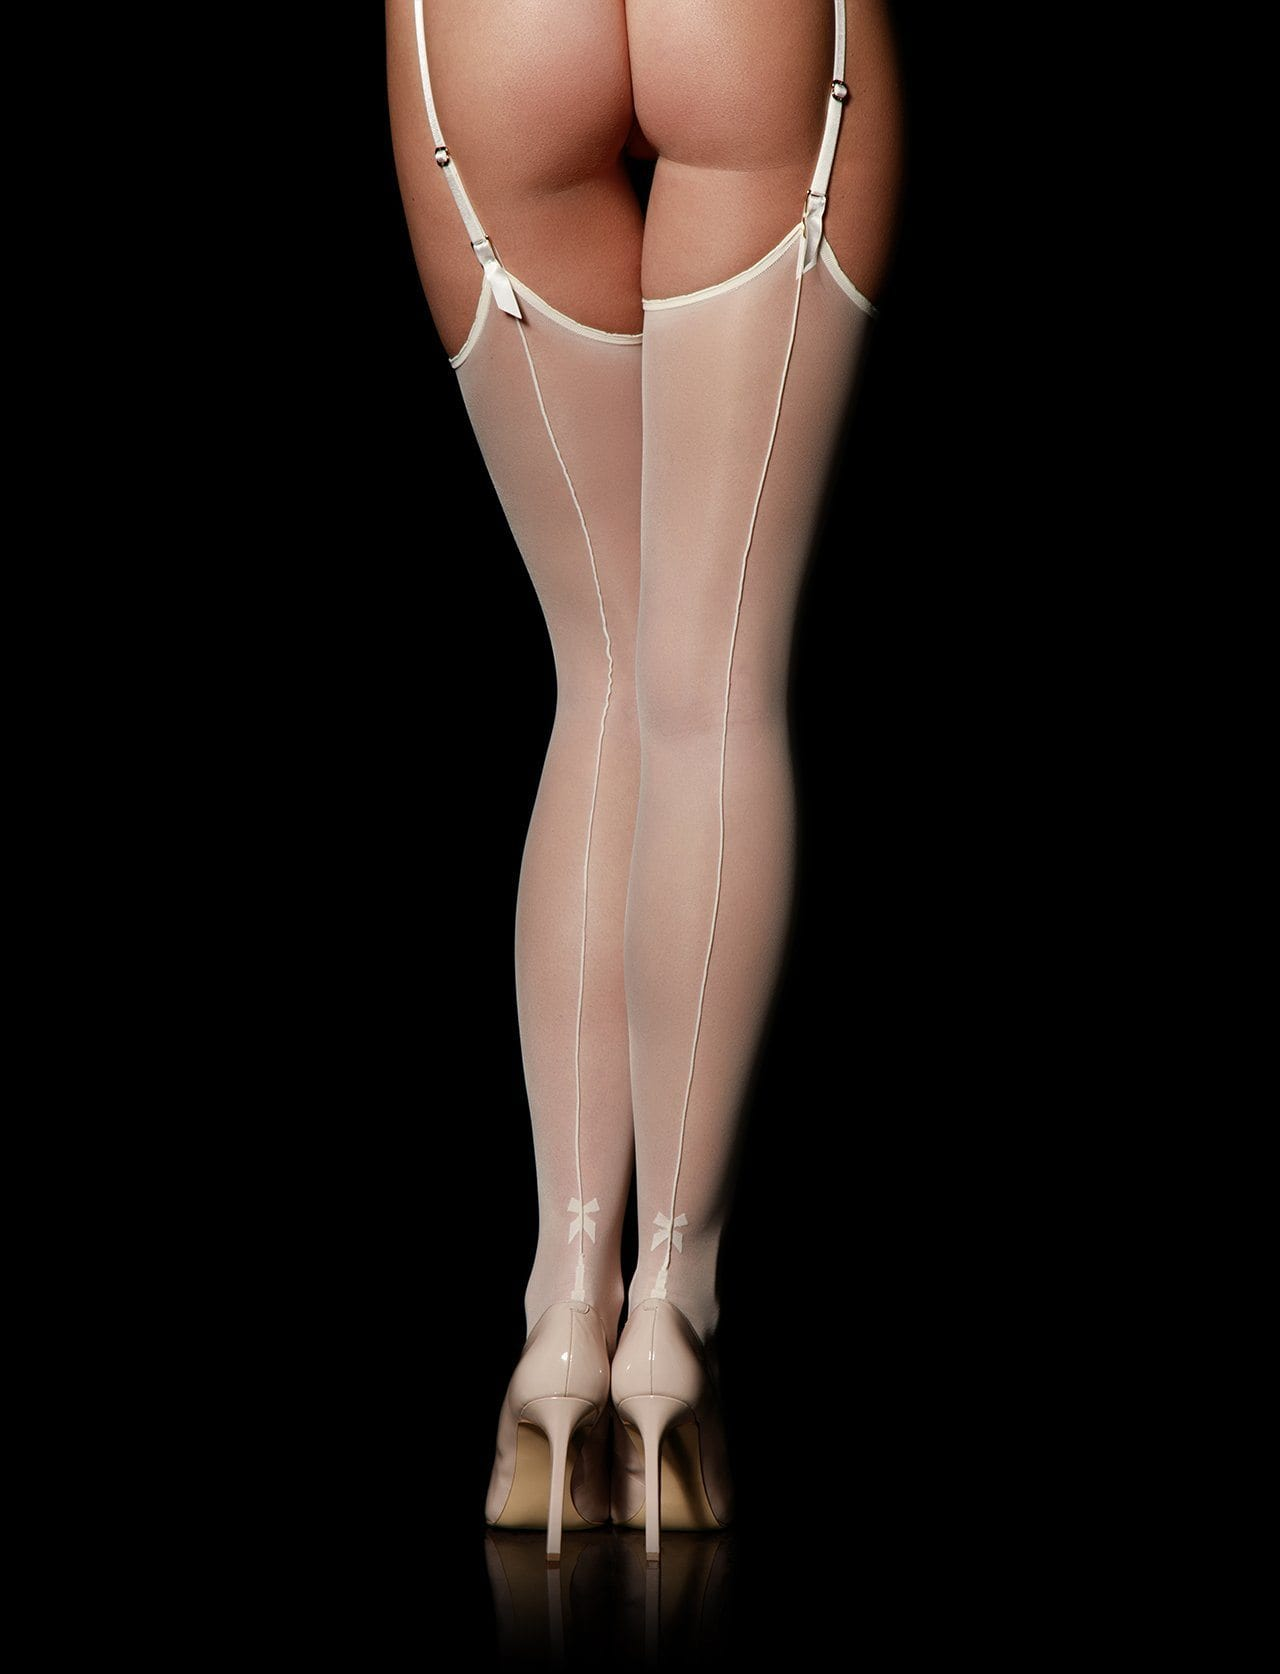 Chic Bowtie Ivory Stockings - Shop Hosiery | Honey Birdette UK